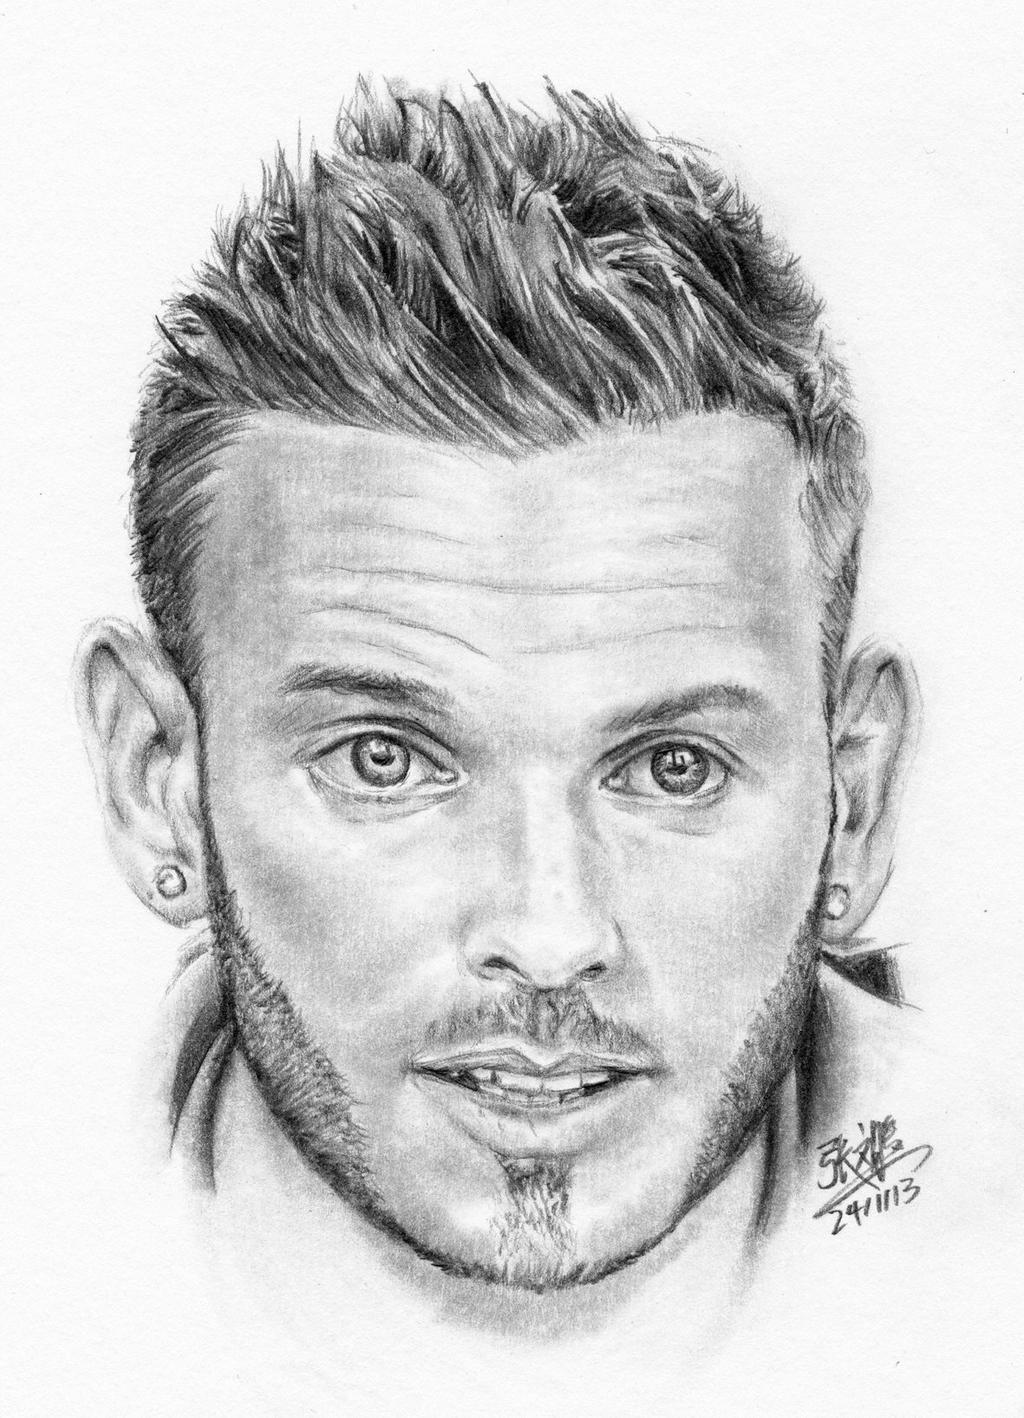 Pencil portrait of Matt Pokora by chaseroflight on DeviantArt